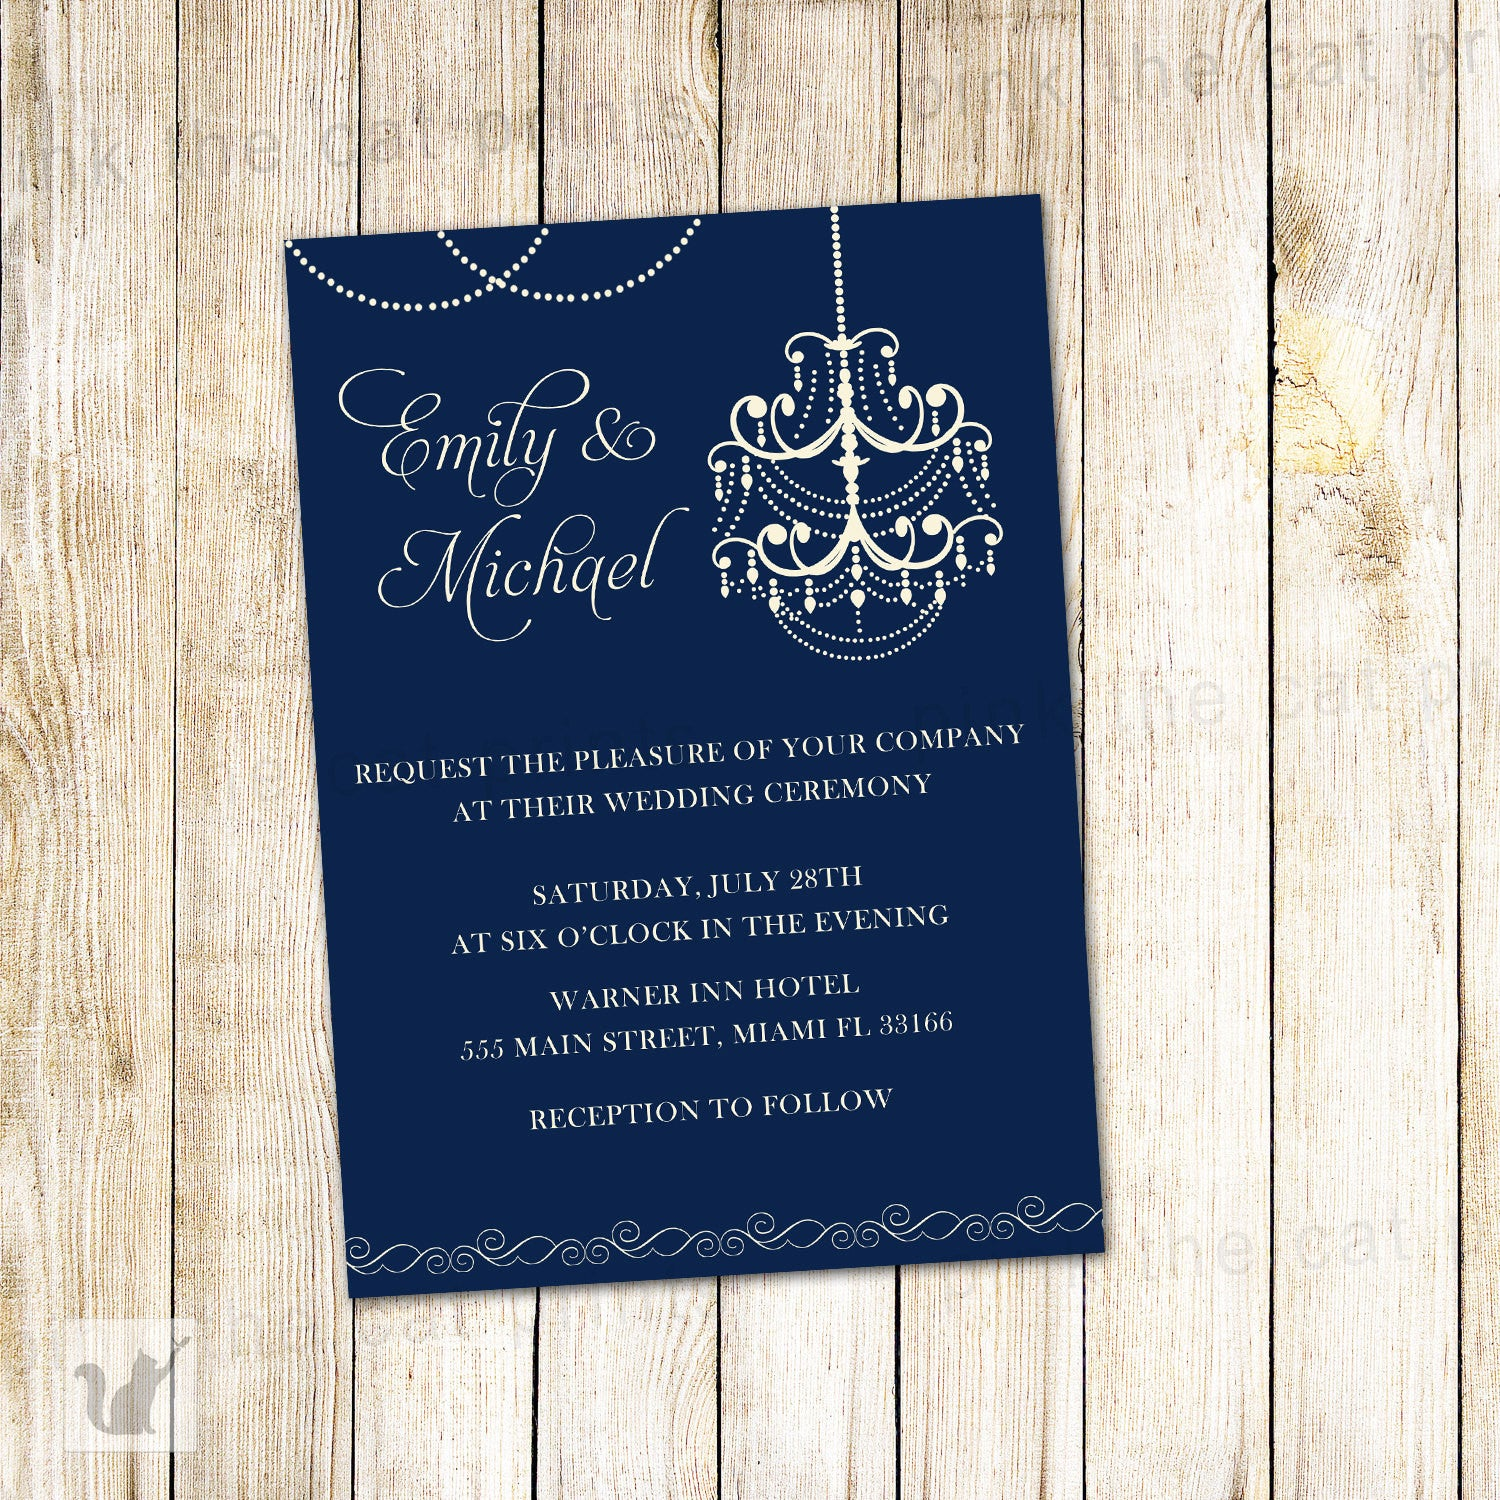 Chandelier Wedding Invitation Navy Blue Gothic Style – Pink The Cat